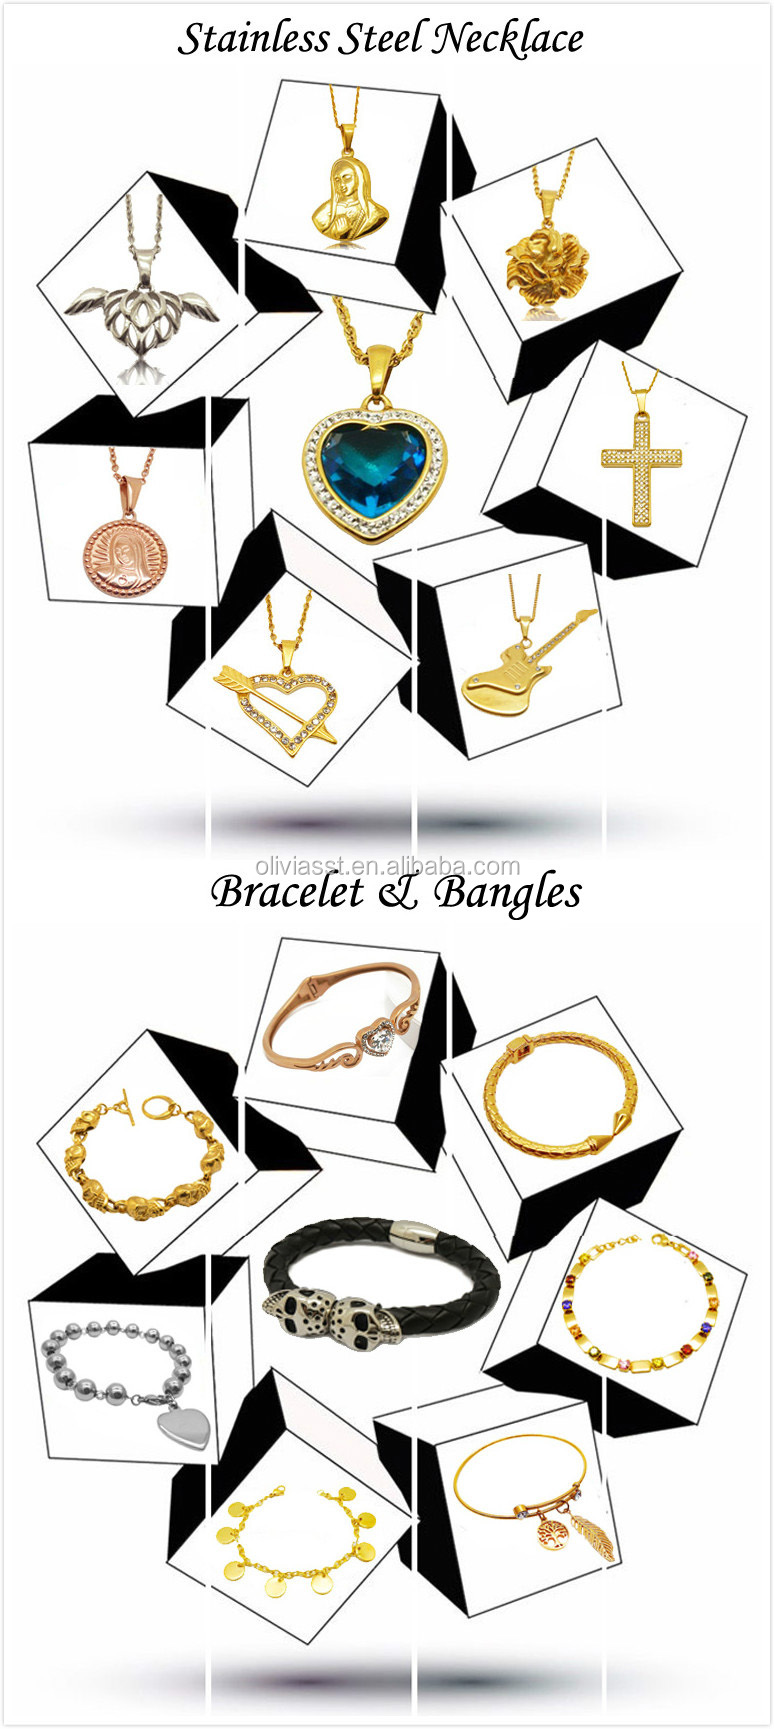 necklace and bangles.jpg